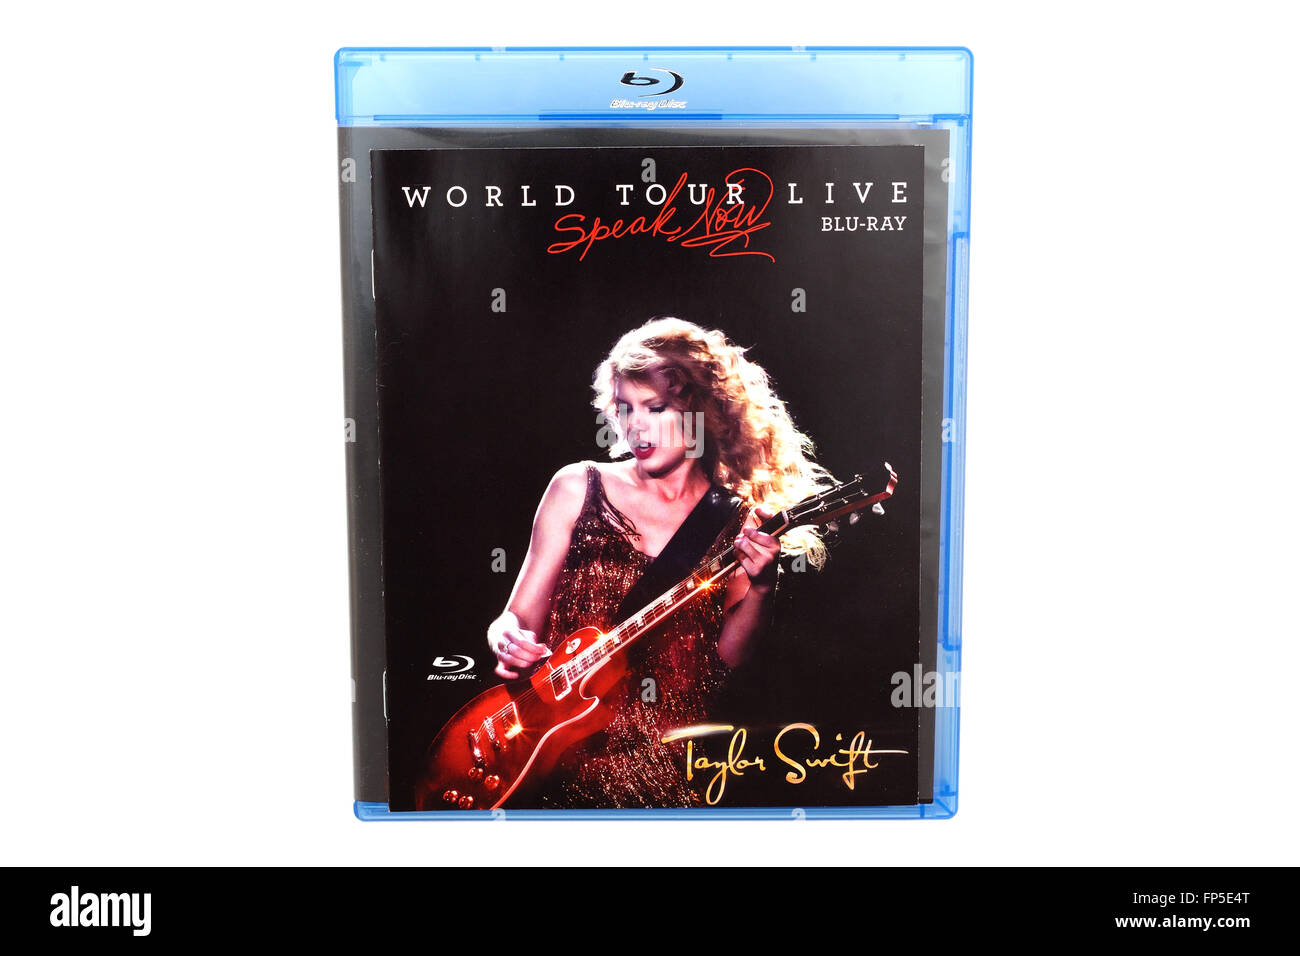 BARCELONA, SPAIN - DEC 27, 2014: The Speak Now World Tour Live, the first live album by American singer-songwriter - Stock Image